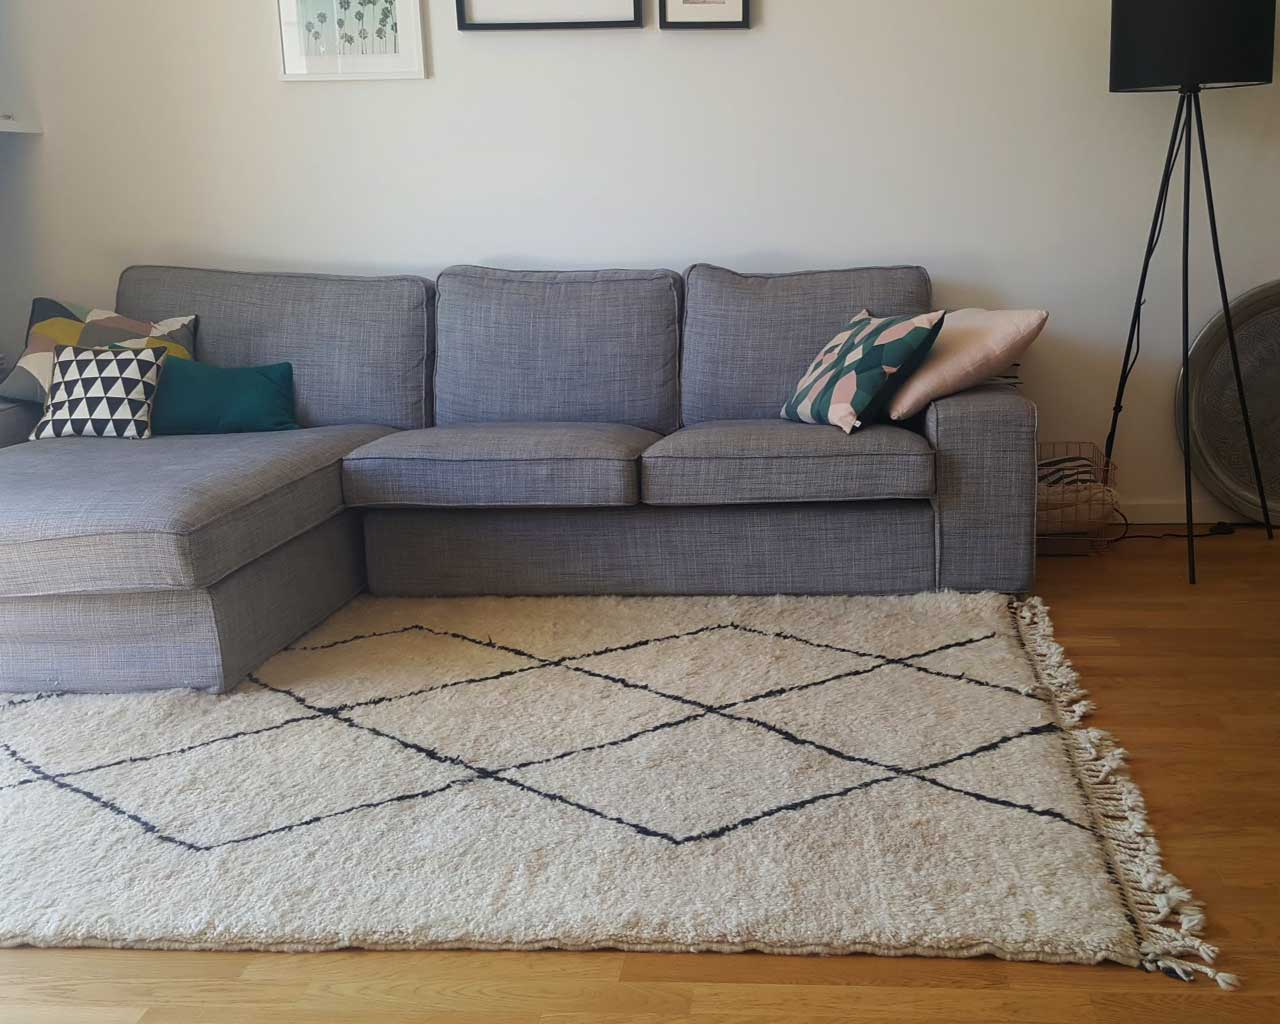 Large Beni Ourain Living Room Grey Sofa Brown Floor 2